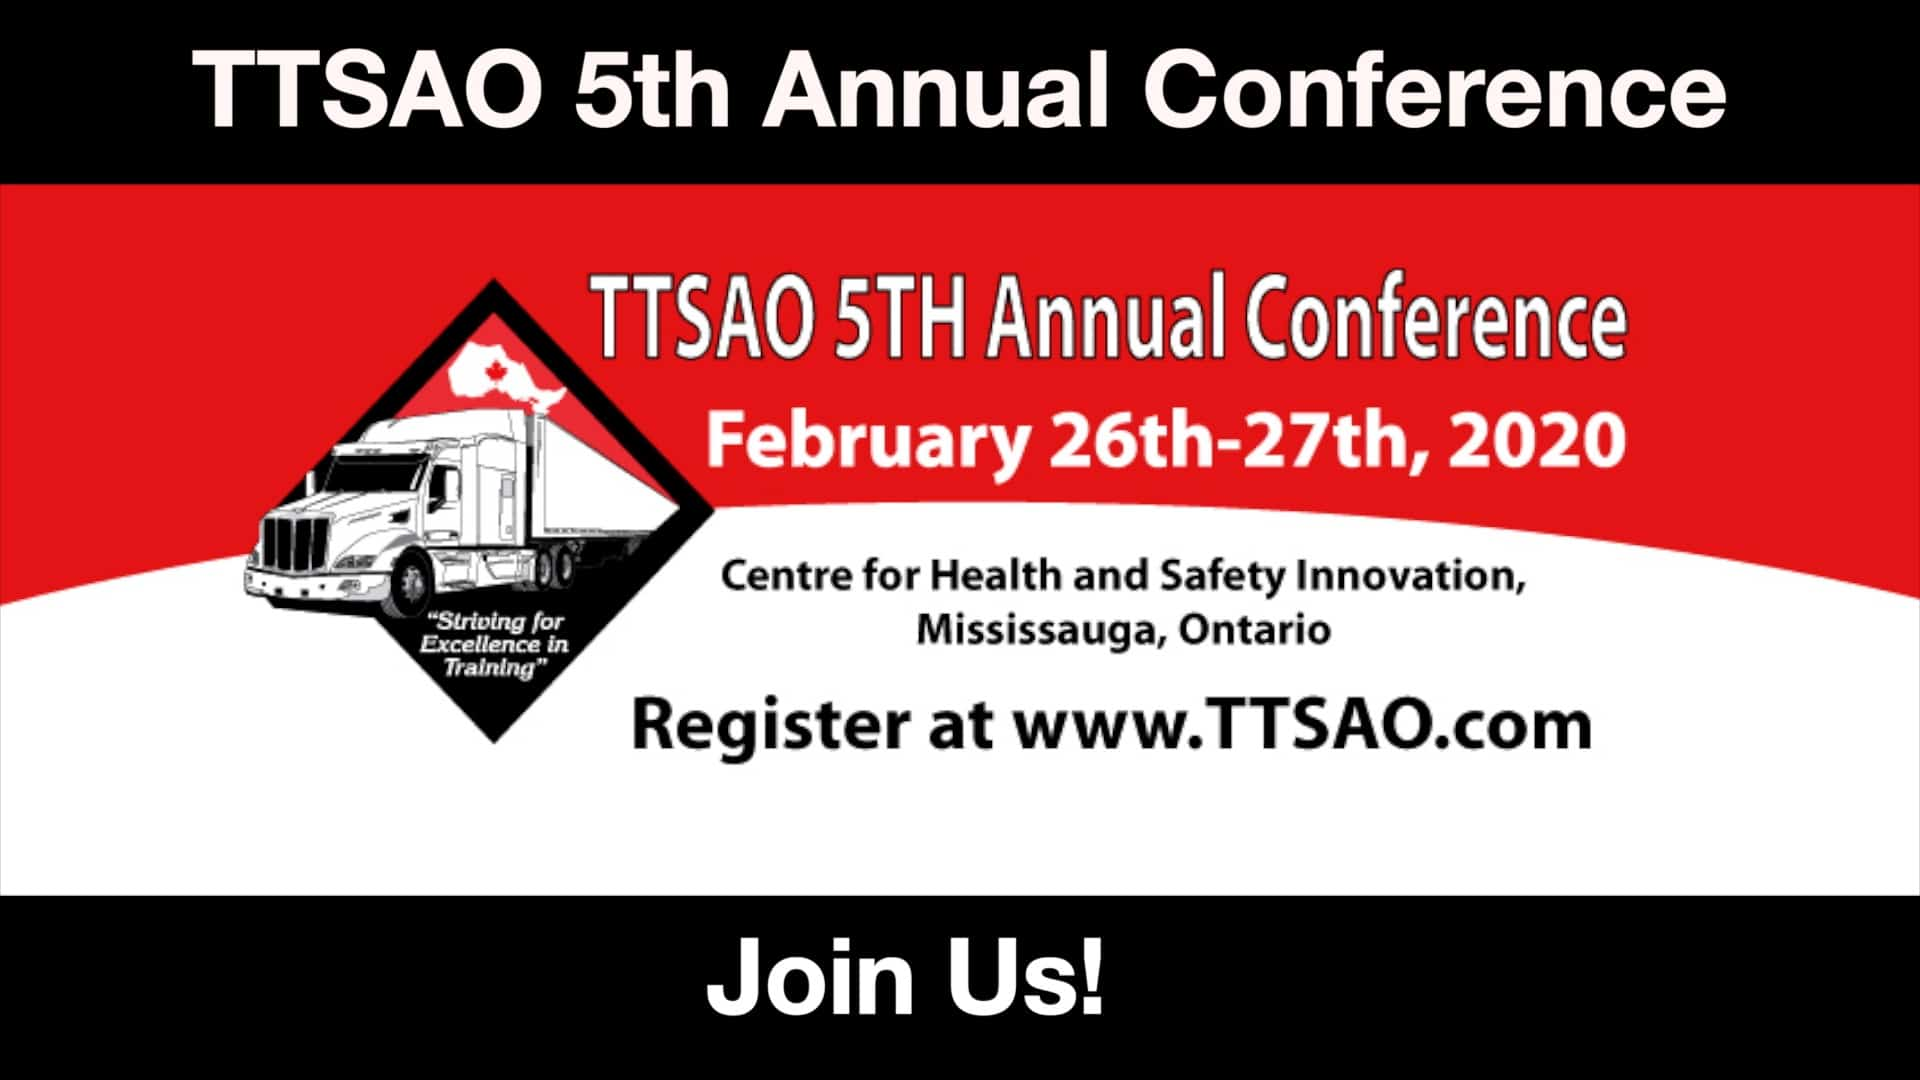 TTSAO Conference Overview